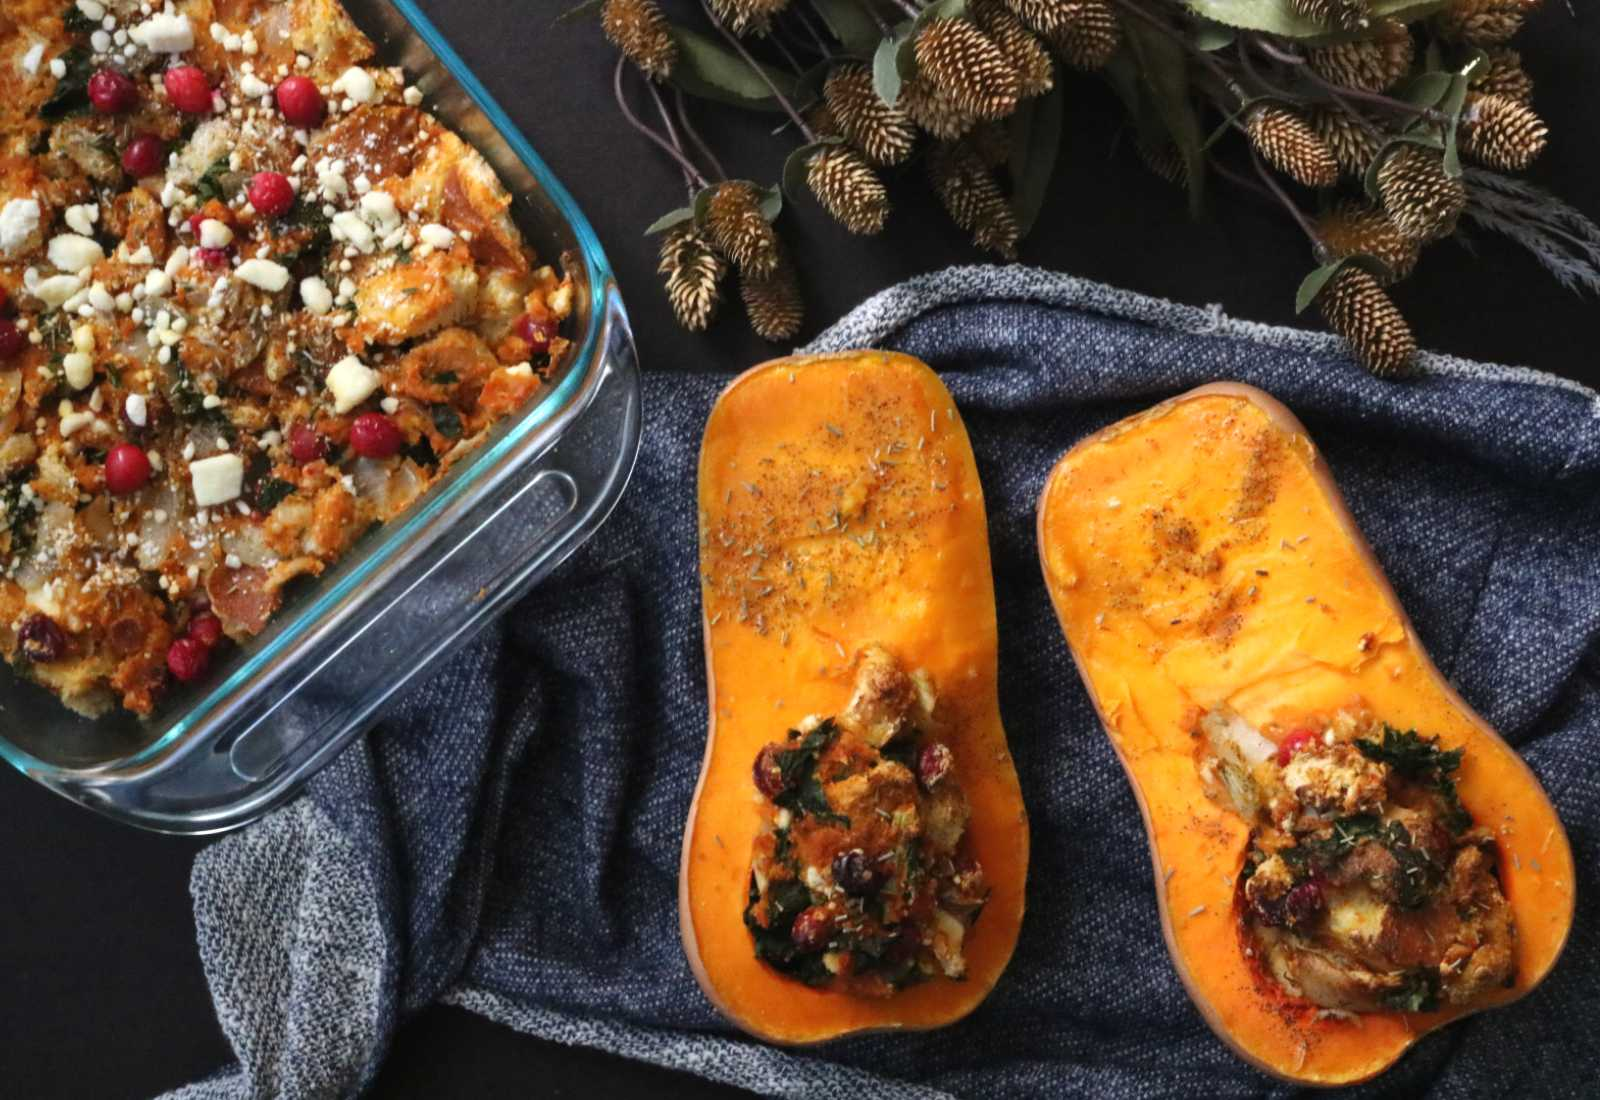 Recipe: Pumpkin Kale & Feta Stuffing